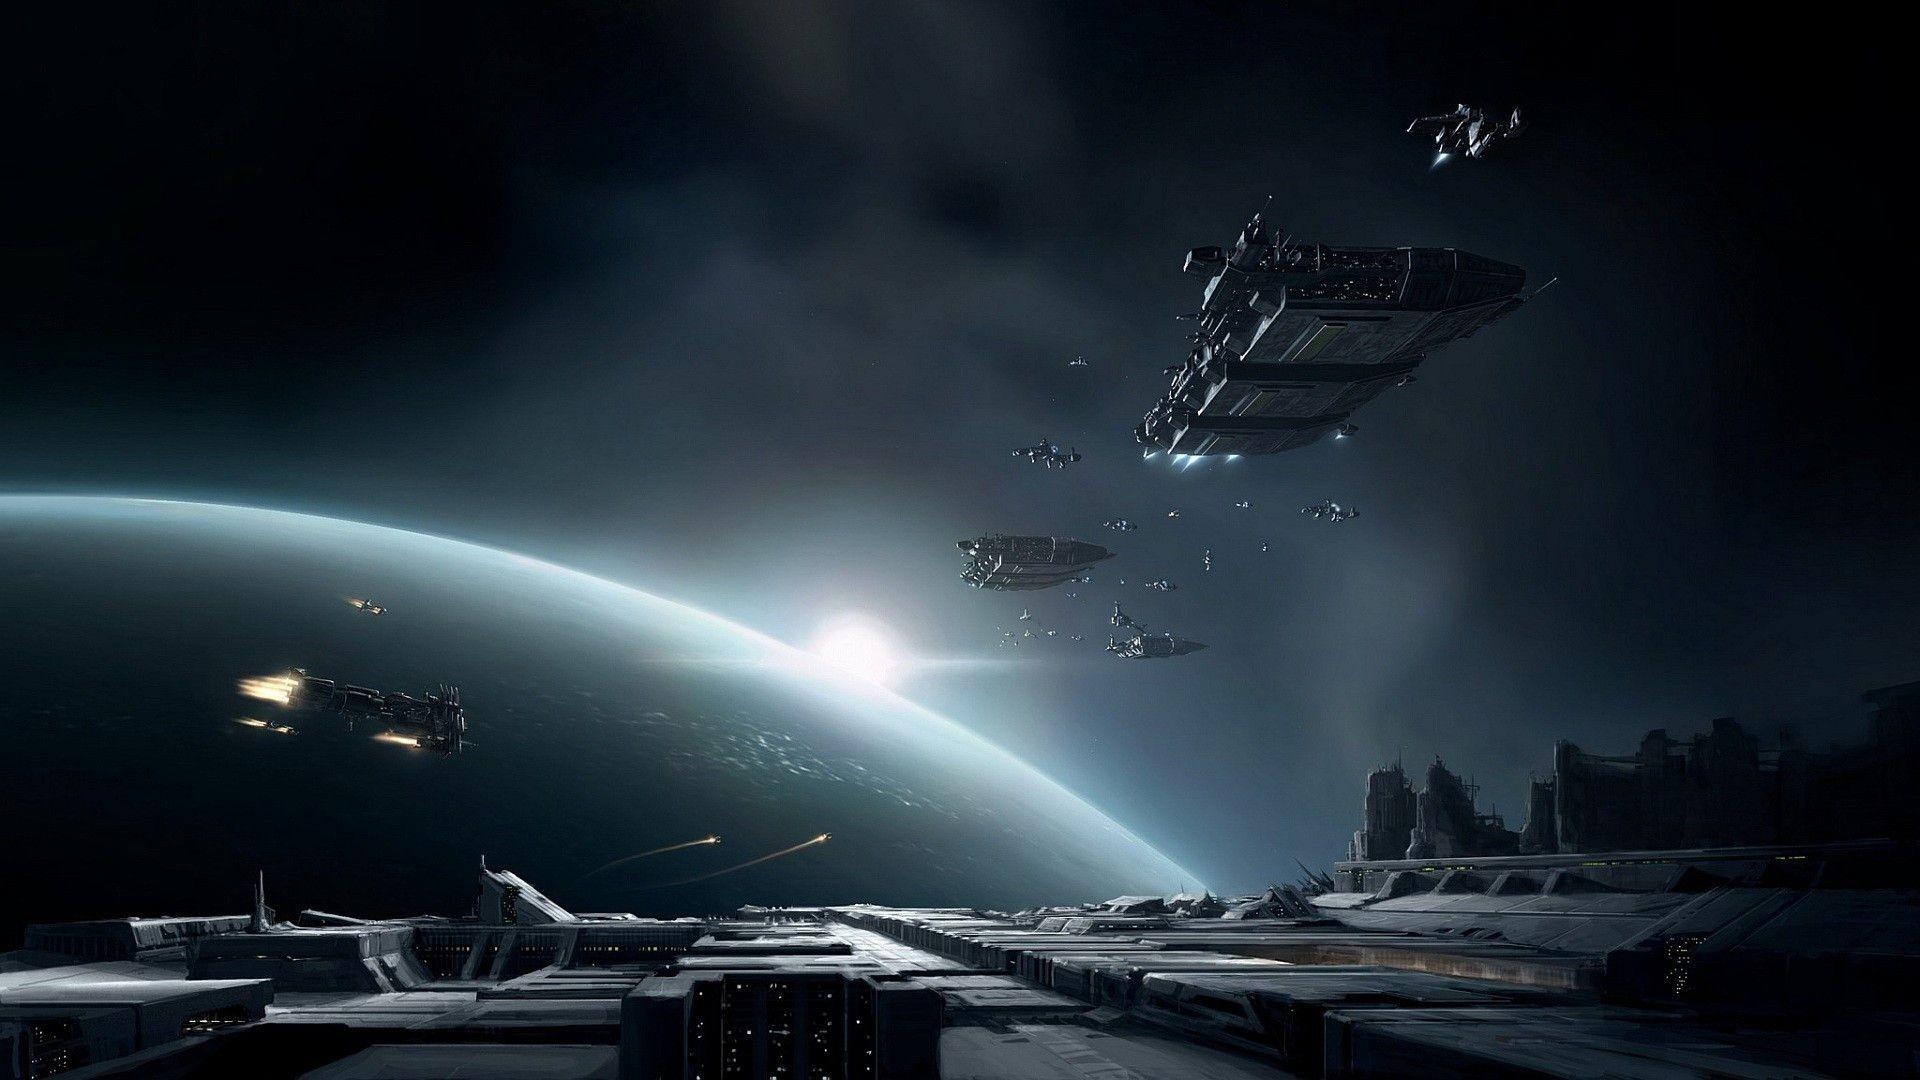 eve online wallpaper  Eve Online wallpaper ·① Download free amazing HD wallpapers for ...